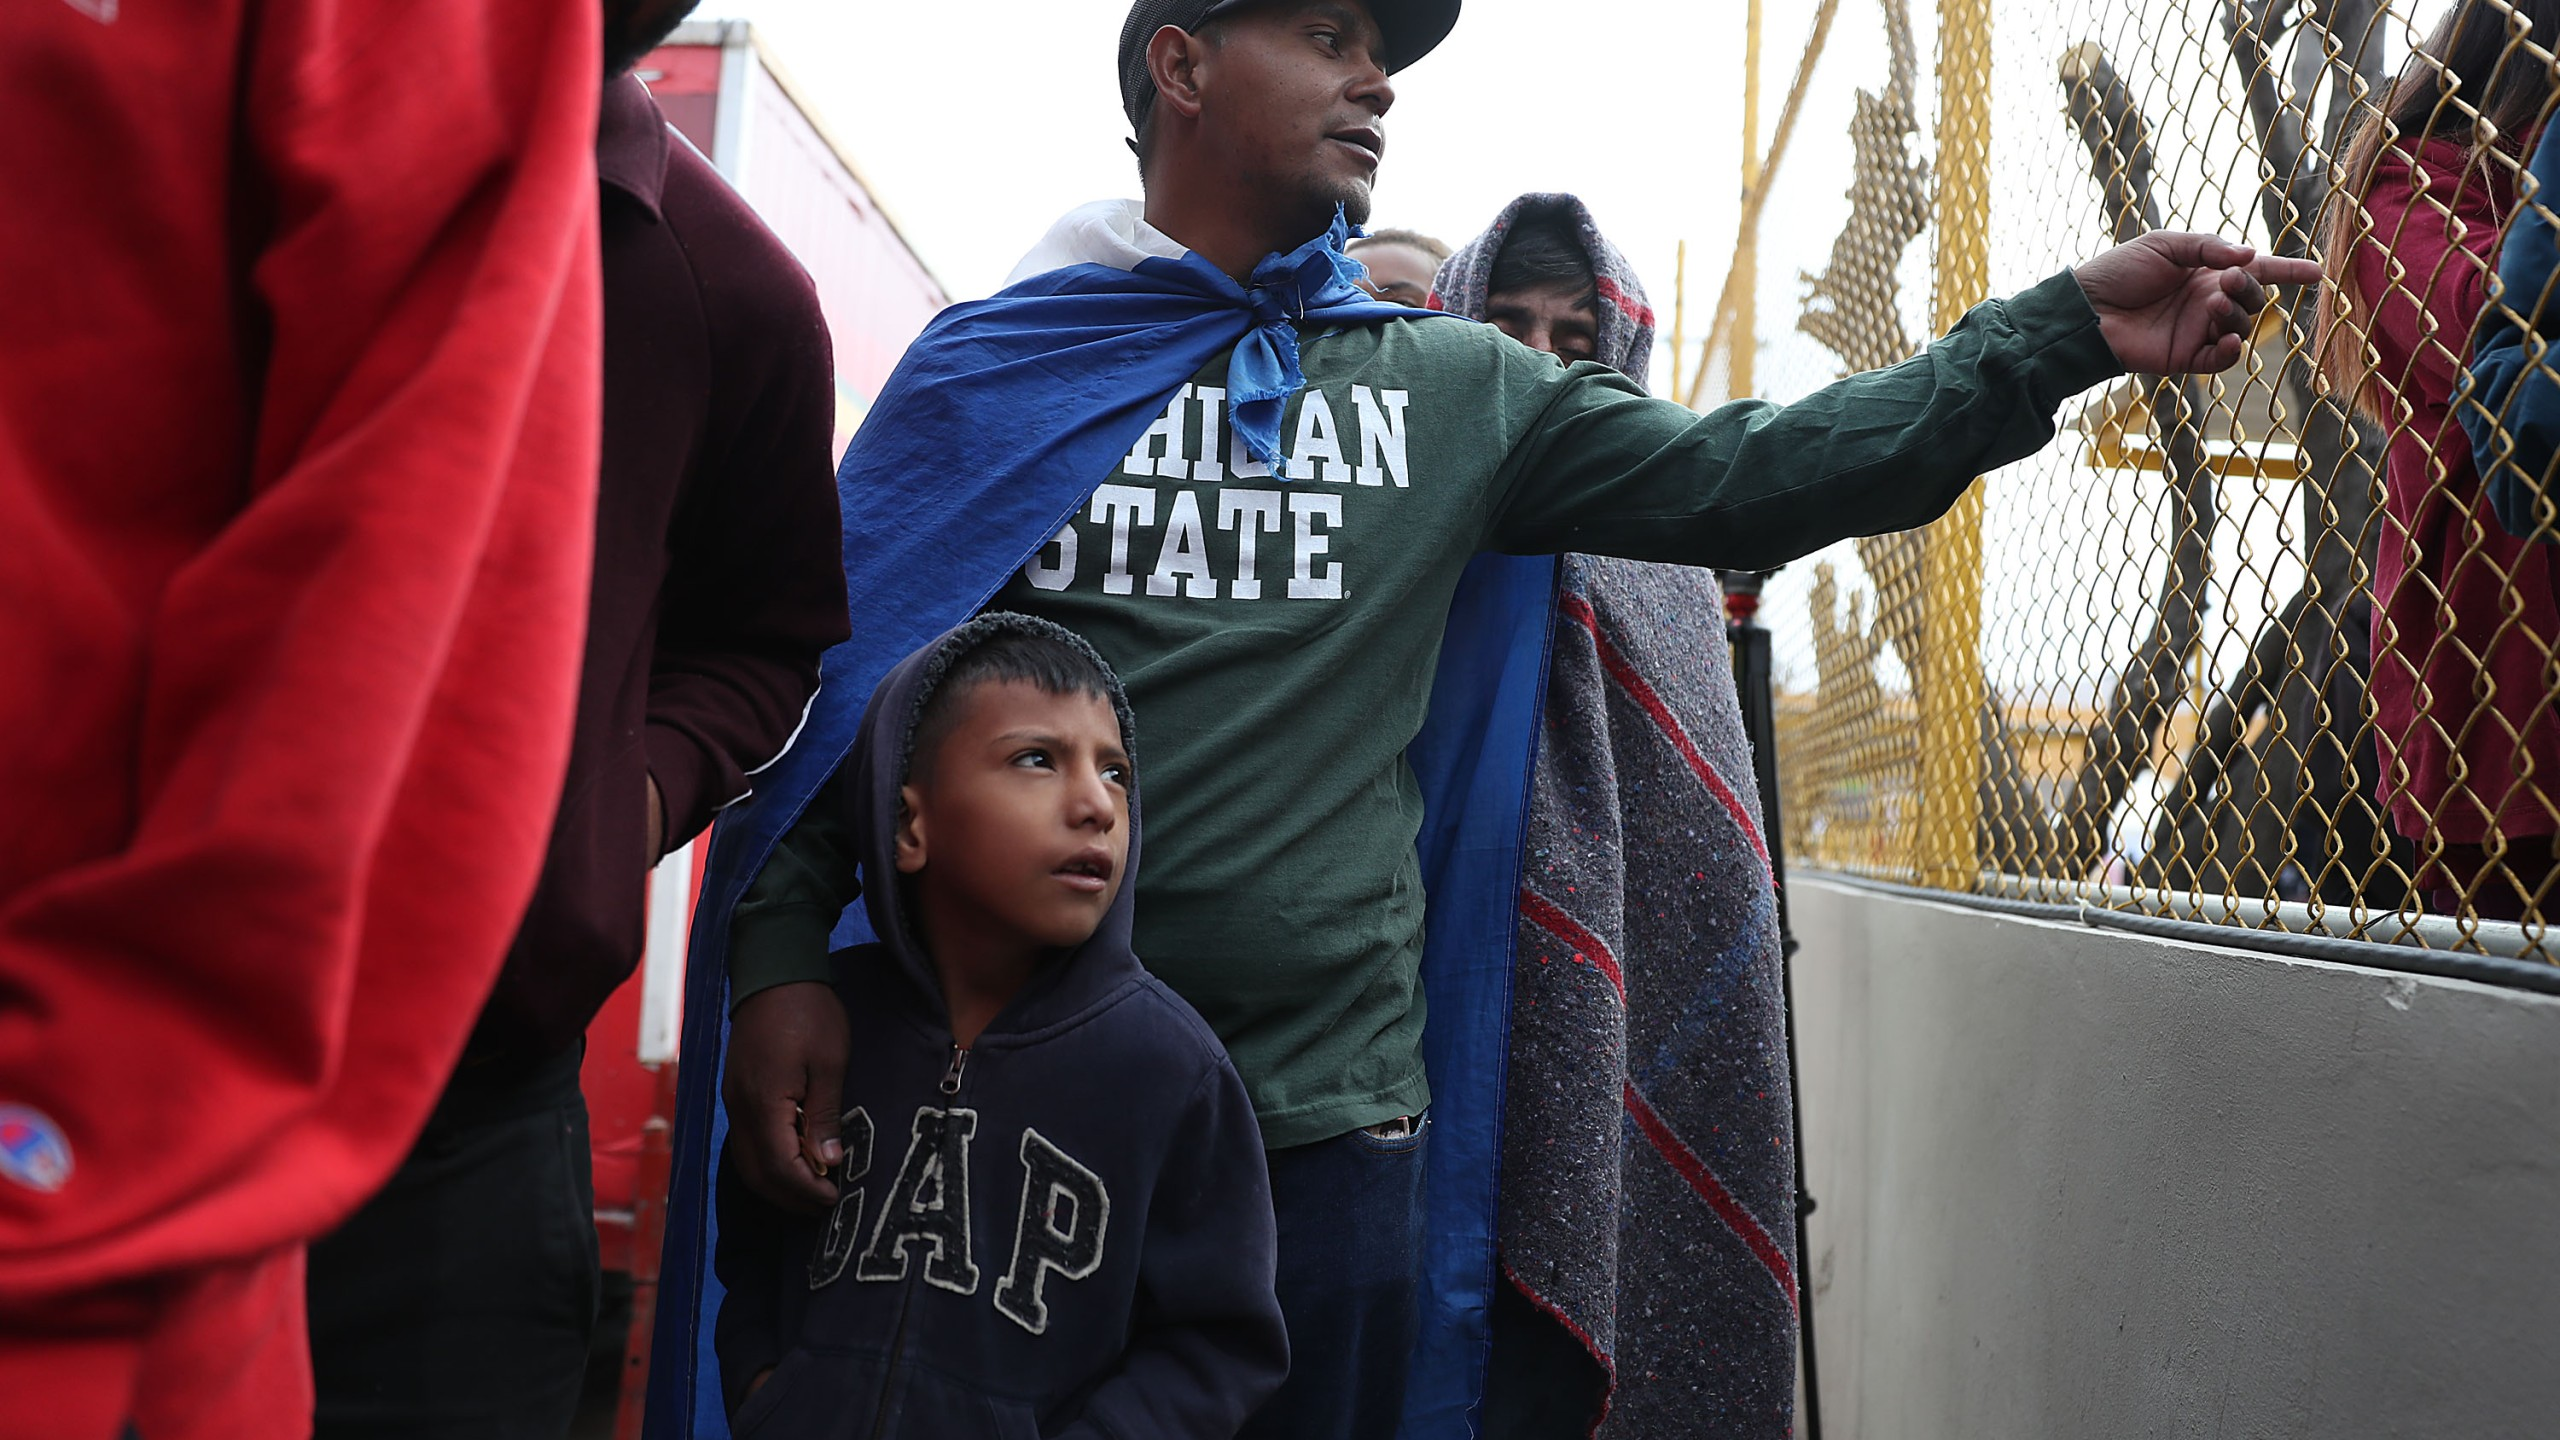 Jose Martinez and his son, Jonathan Martinez, both of whom are from Honduras, join other migrants, most of whom are part of a recently arrived caravan, at a migrant hostel in Piedras Negras, Mexico, as they wait to apply for asylum in to the United States on Feb. 9, 2019. (Credit: Joe Raedle / Getty Images)